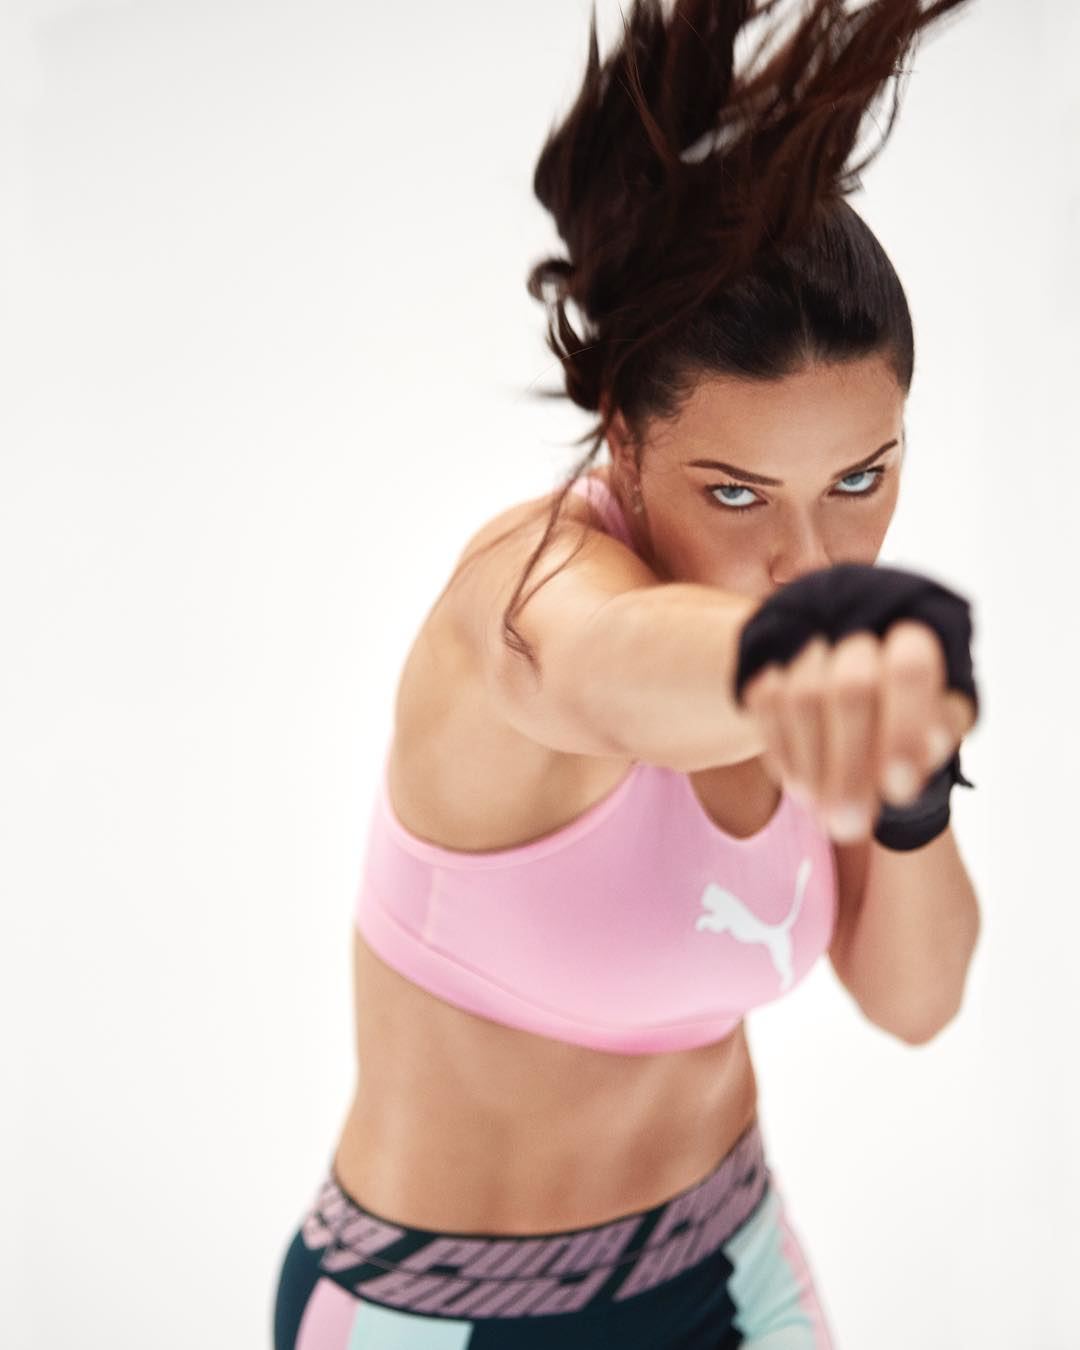 Adriana Lima Wearing Activewear: Pink Bra Top And Sporty Leggings 2021